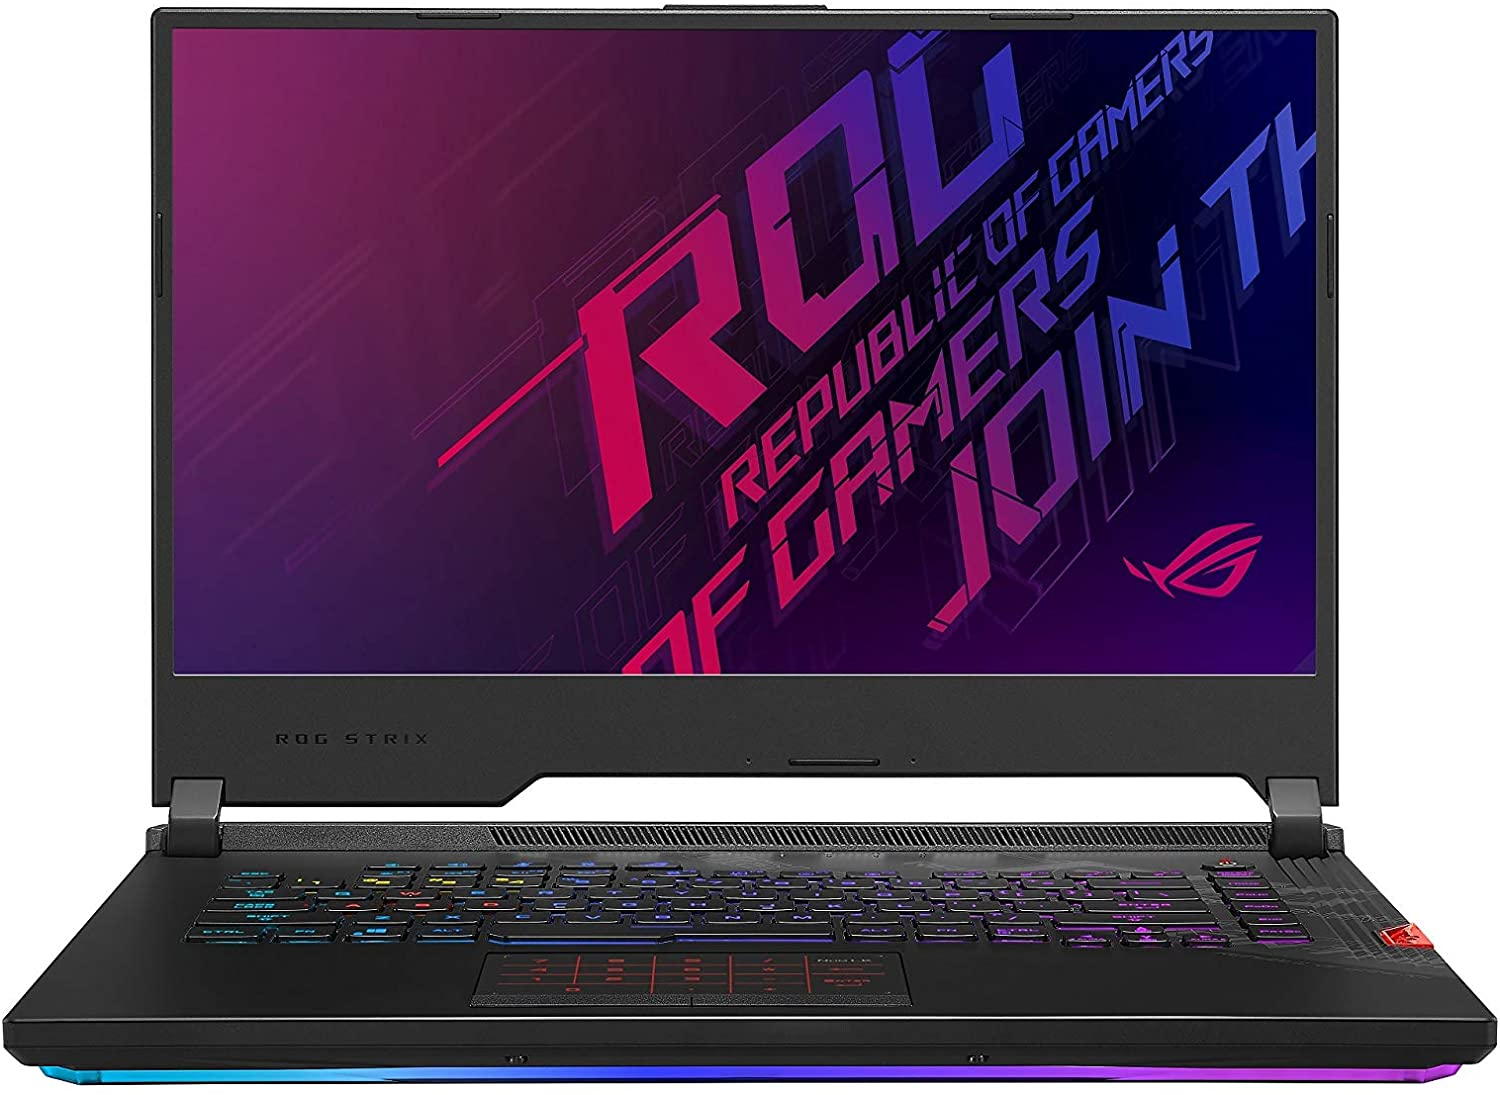 CUK ROG Strix SCAR 15 G532LWS by ASUS 15 Inch Gaming Notebook (Intel Core i7, 16GB RAM, 1TB NVMe SSD, NVIDIA GeForce RTX 2070 Super 8GB, 15.6 FHD IPS 240Hz 3ms, Windows 10 Home) Gamer Laptop Computer